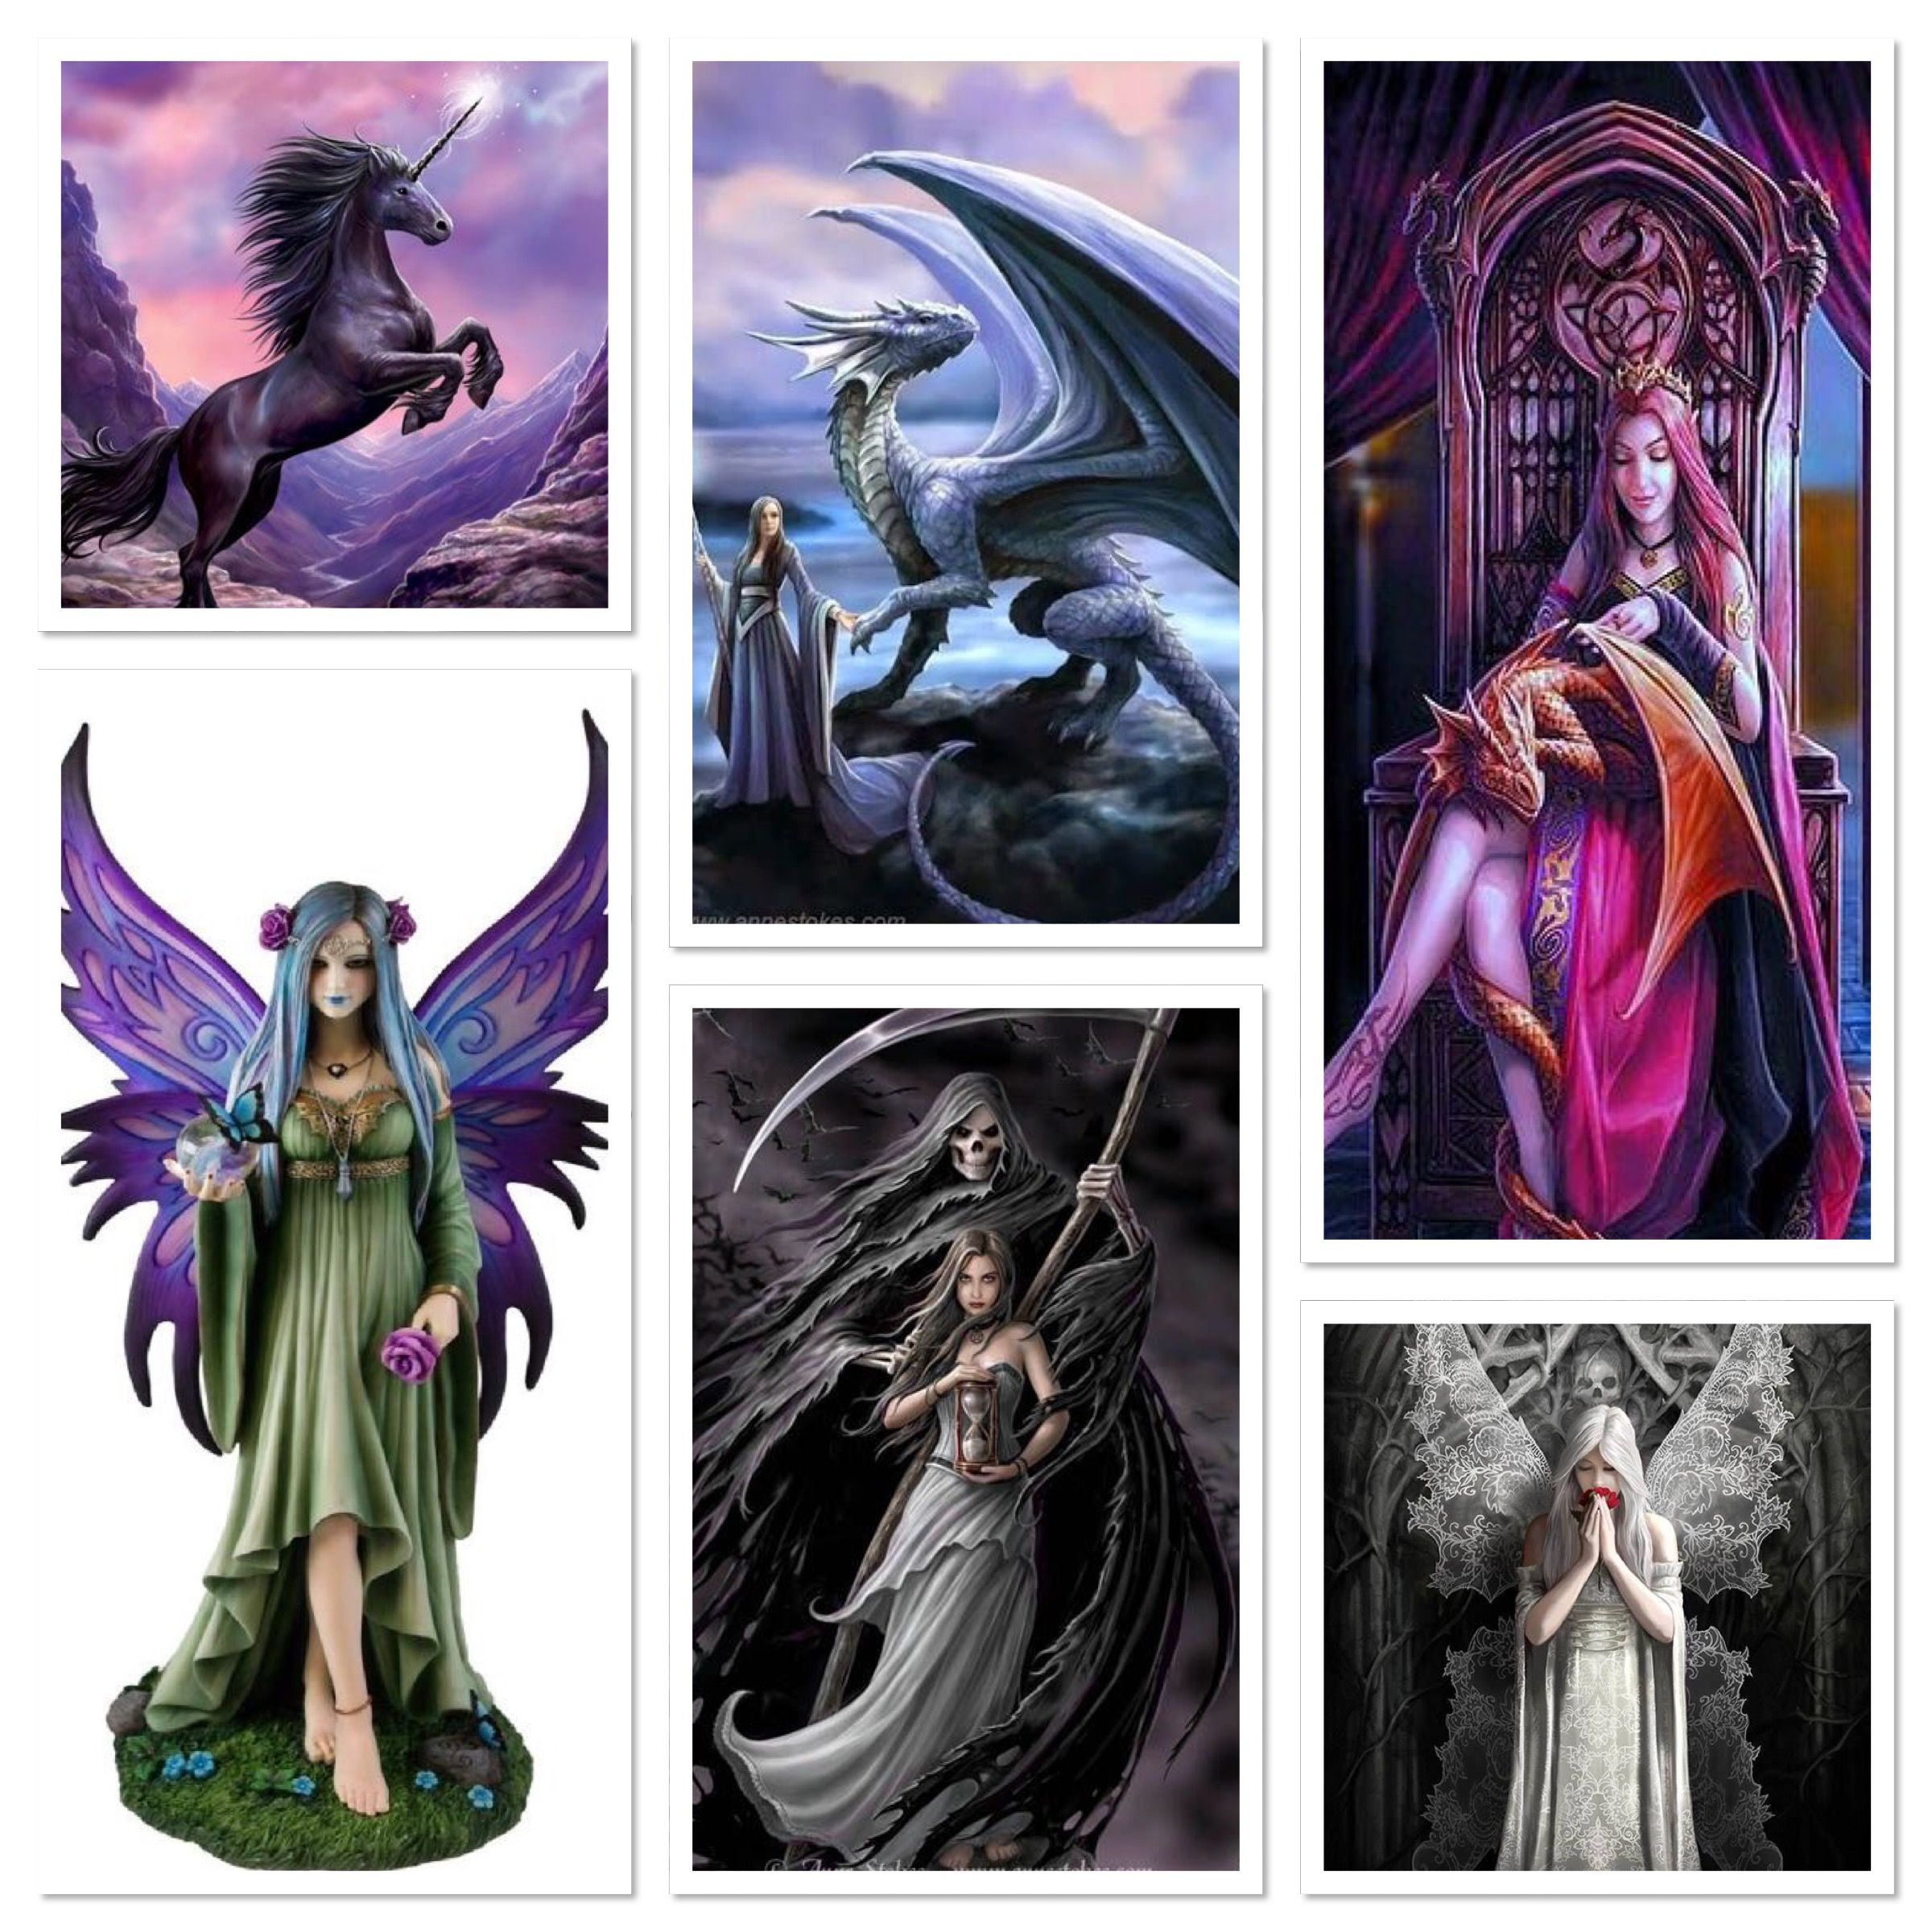 Pin By Marlie Maes On Anne Stokes Anne Stokes Movie Posters Anne